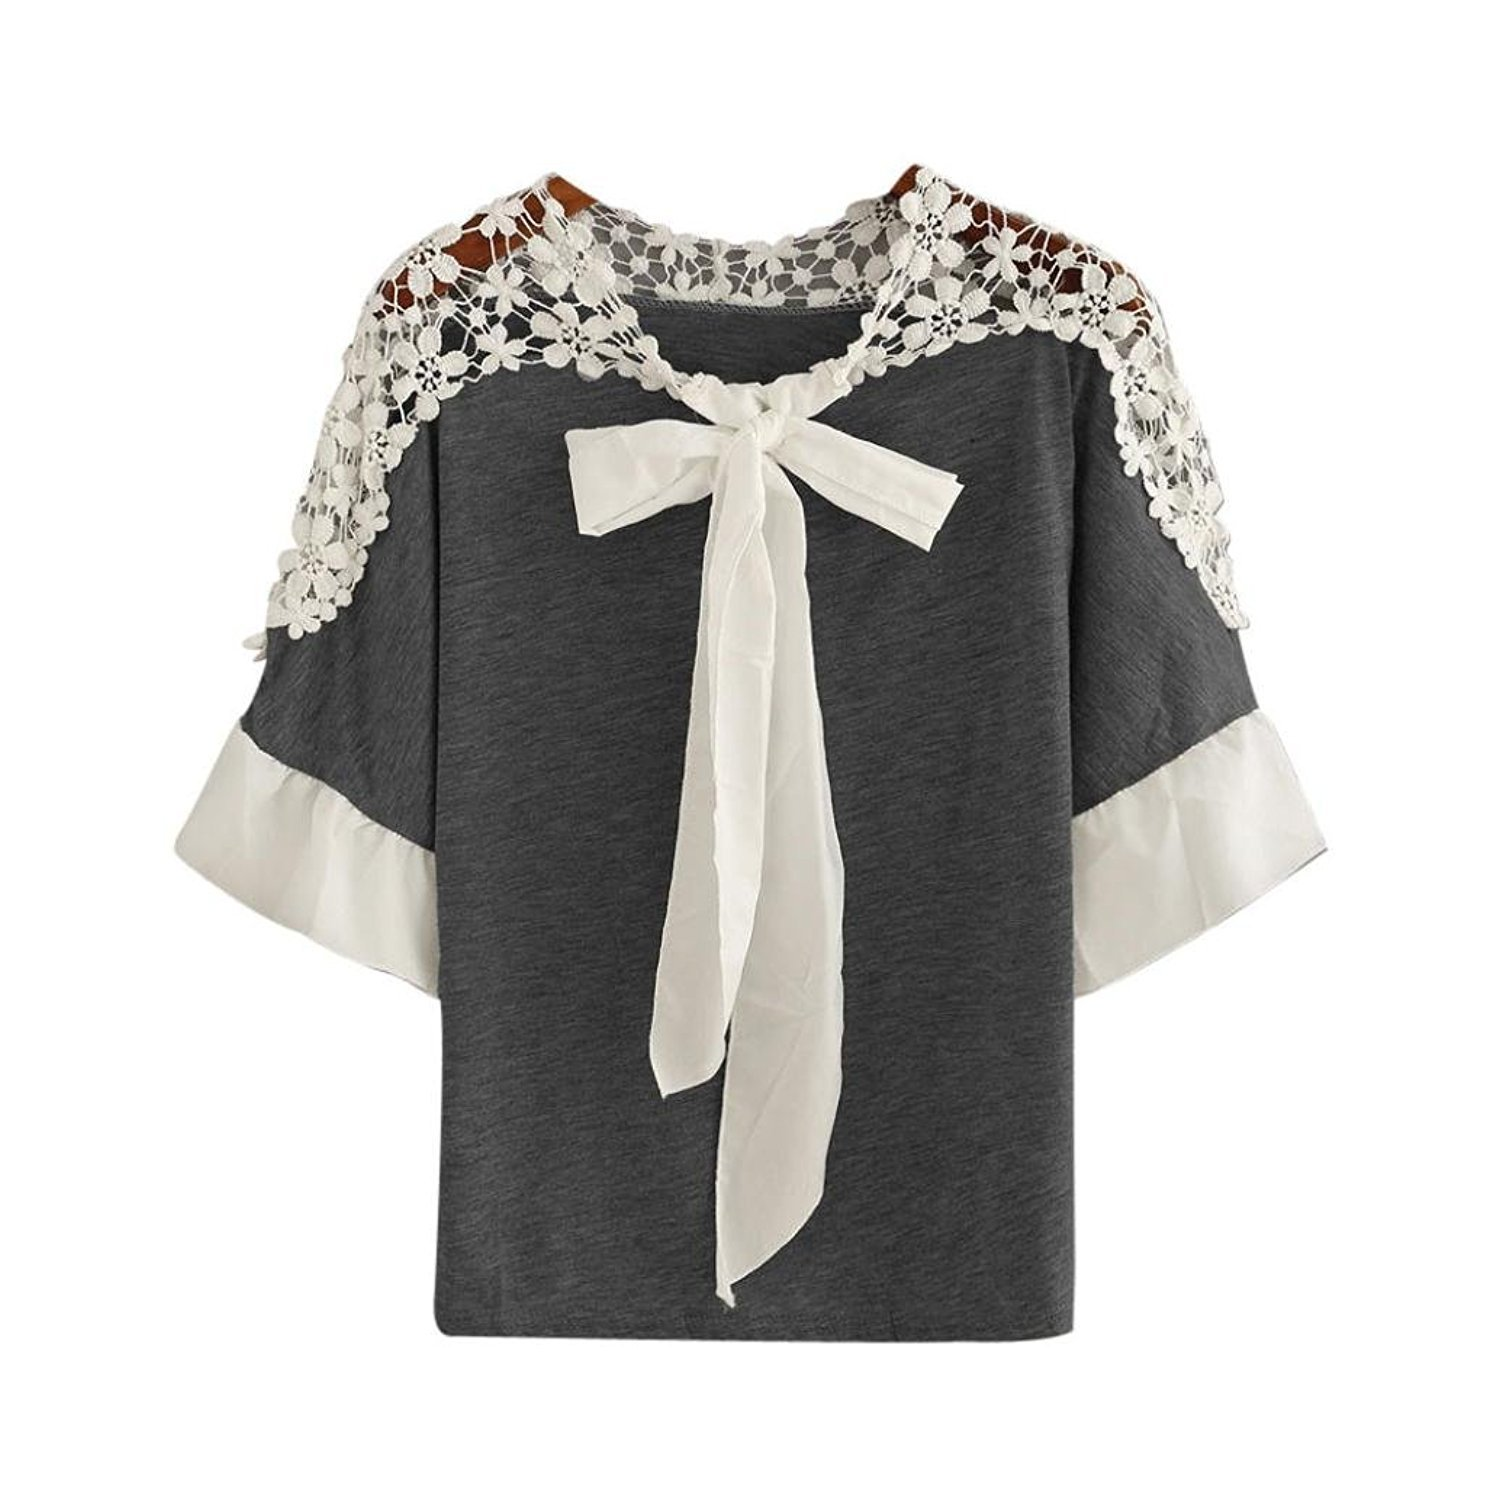 Fulltime(TM) Women Lace Bow Shirt Casual Blouse Tops YHL70818181